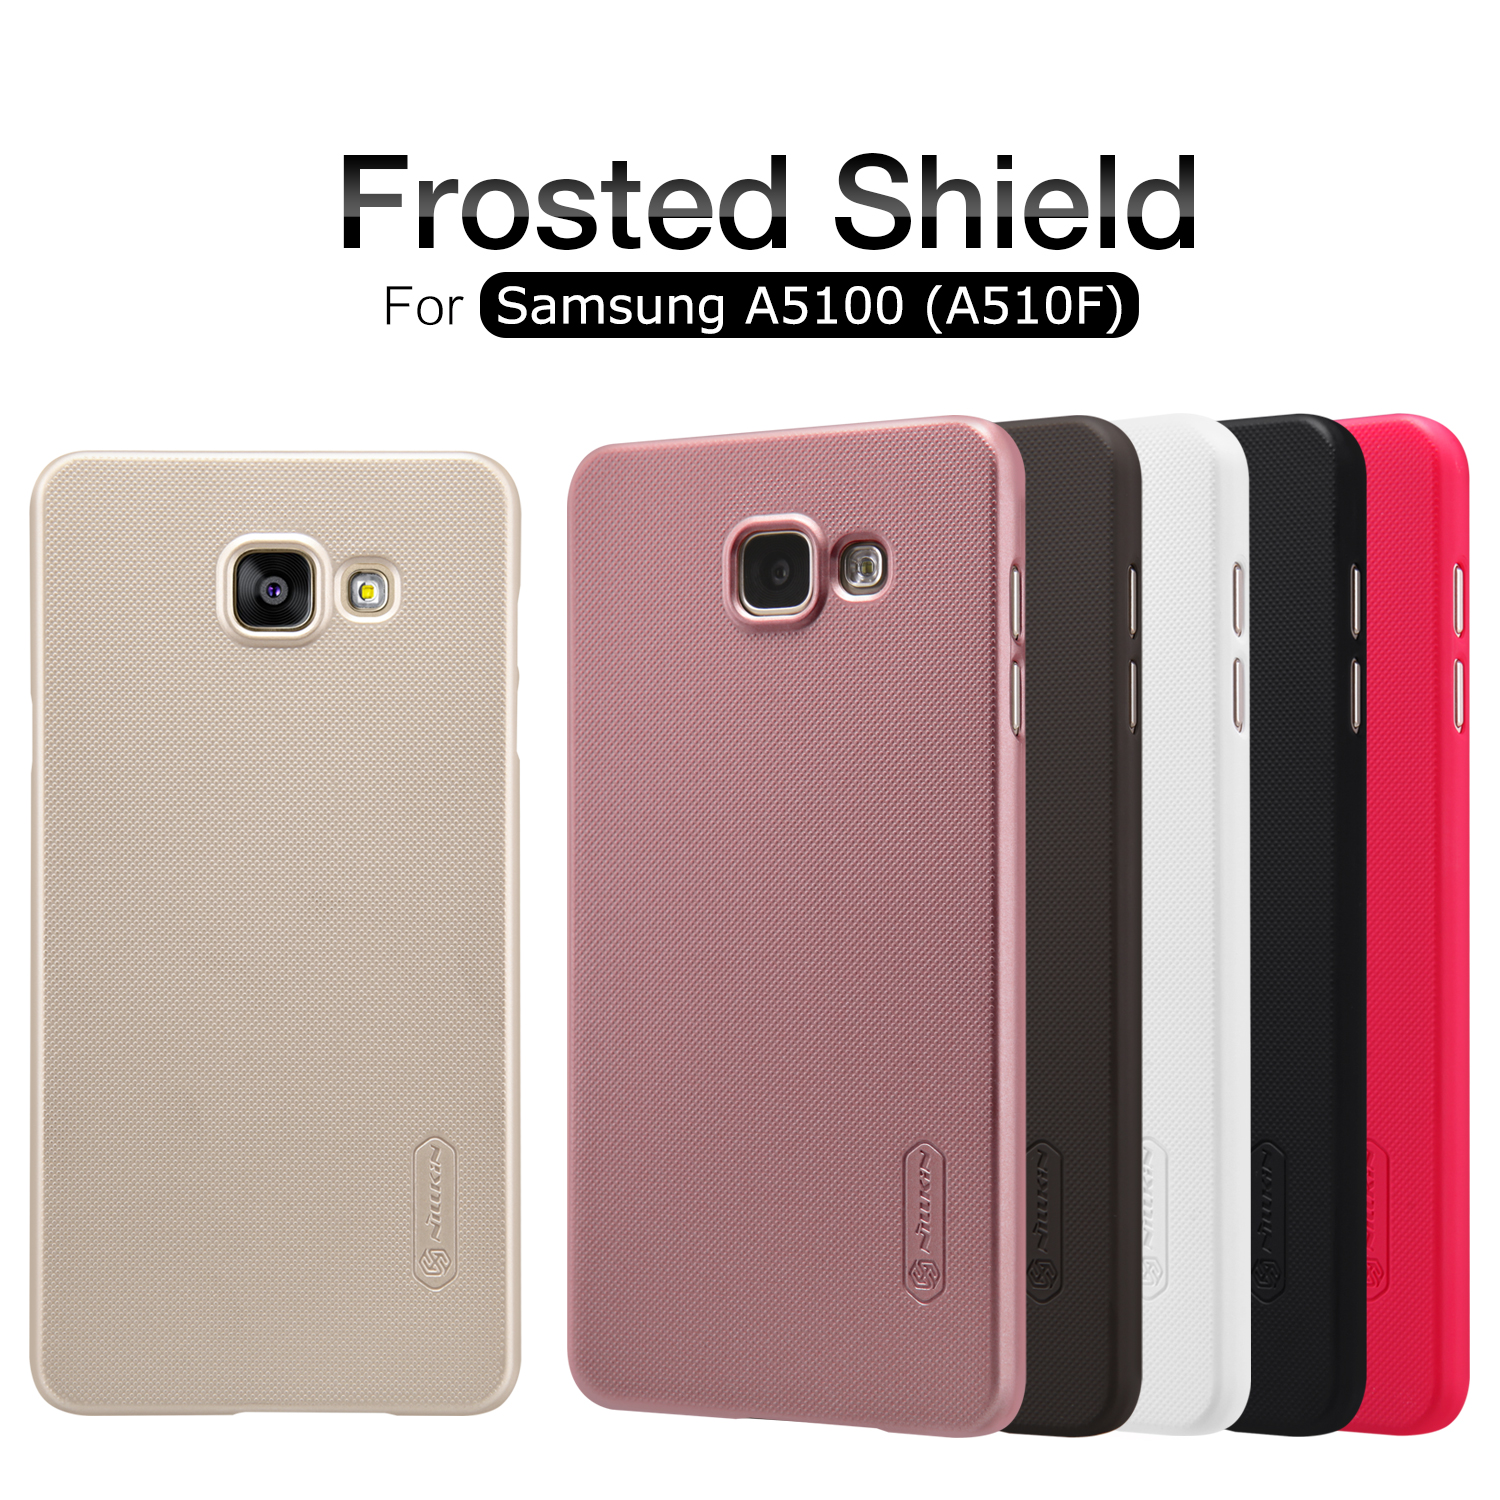 Nillkin Frosted Shield Hard Back Case Cover For Samsung Galaxy A3 A5 A7 2016 A310F A3100